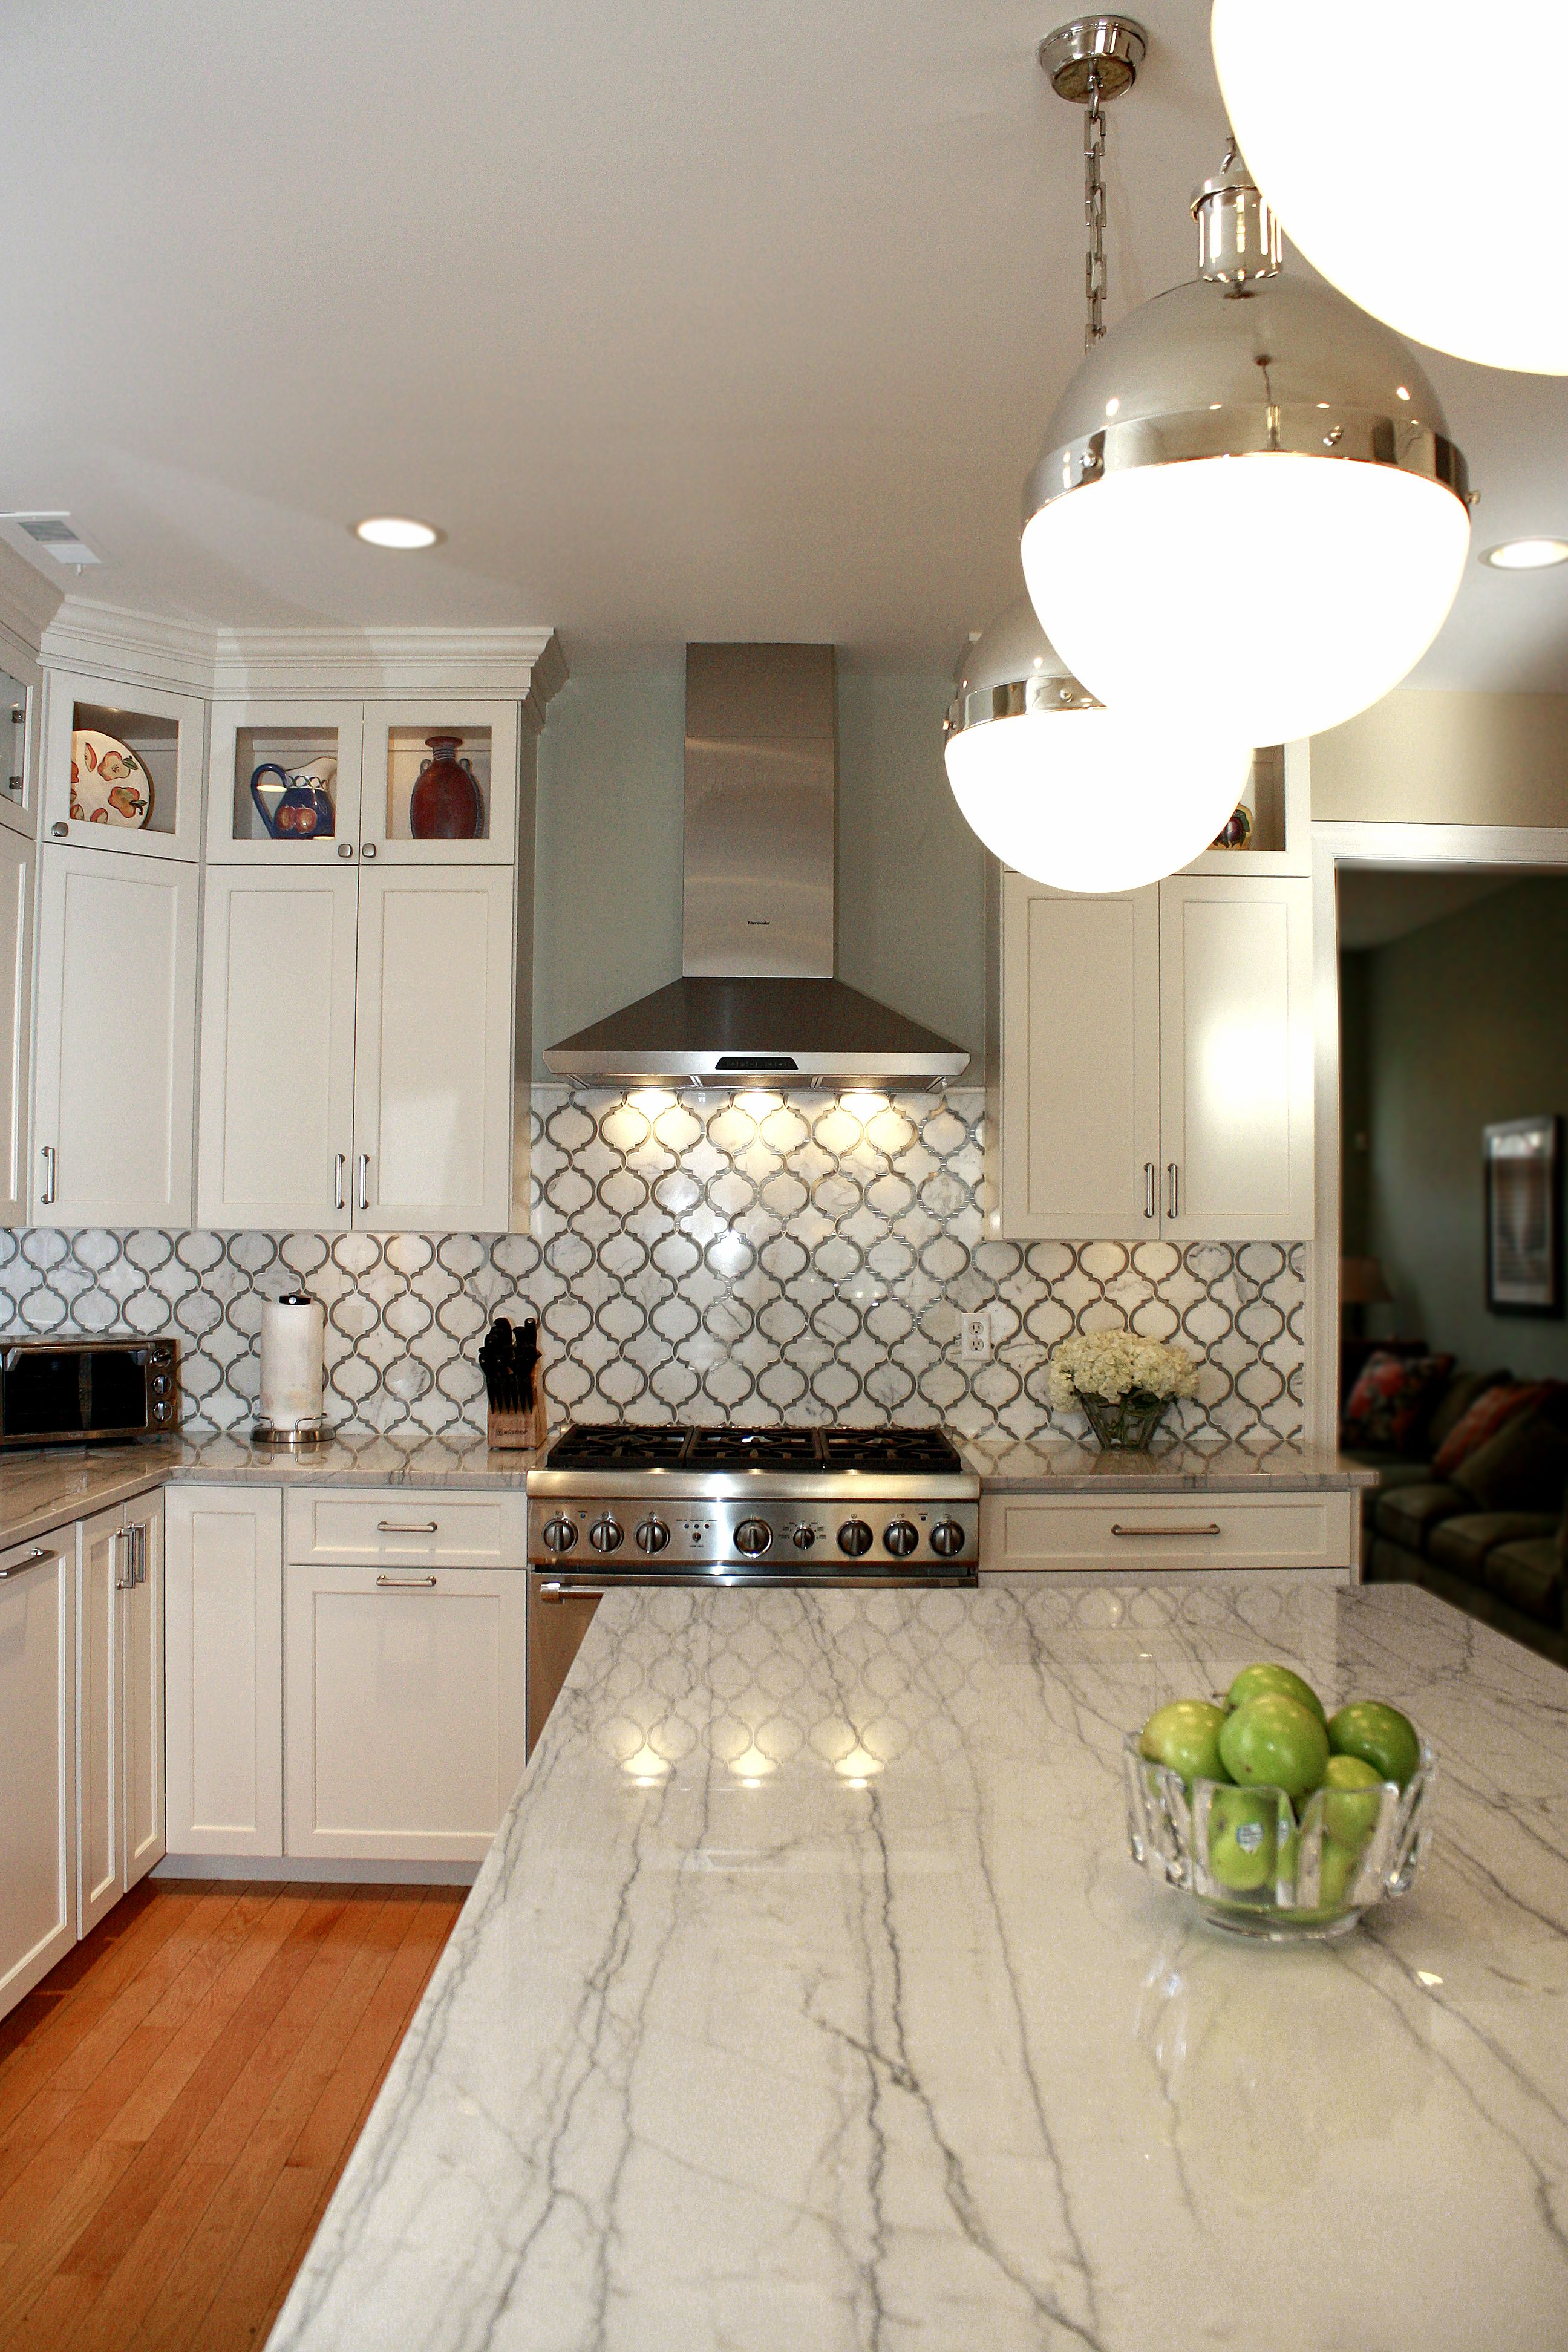 Discount Granite Countertops Nj Love White Macaubas Quartzite Countertops And Calacatta